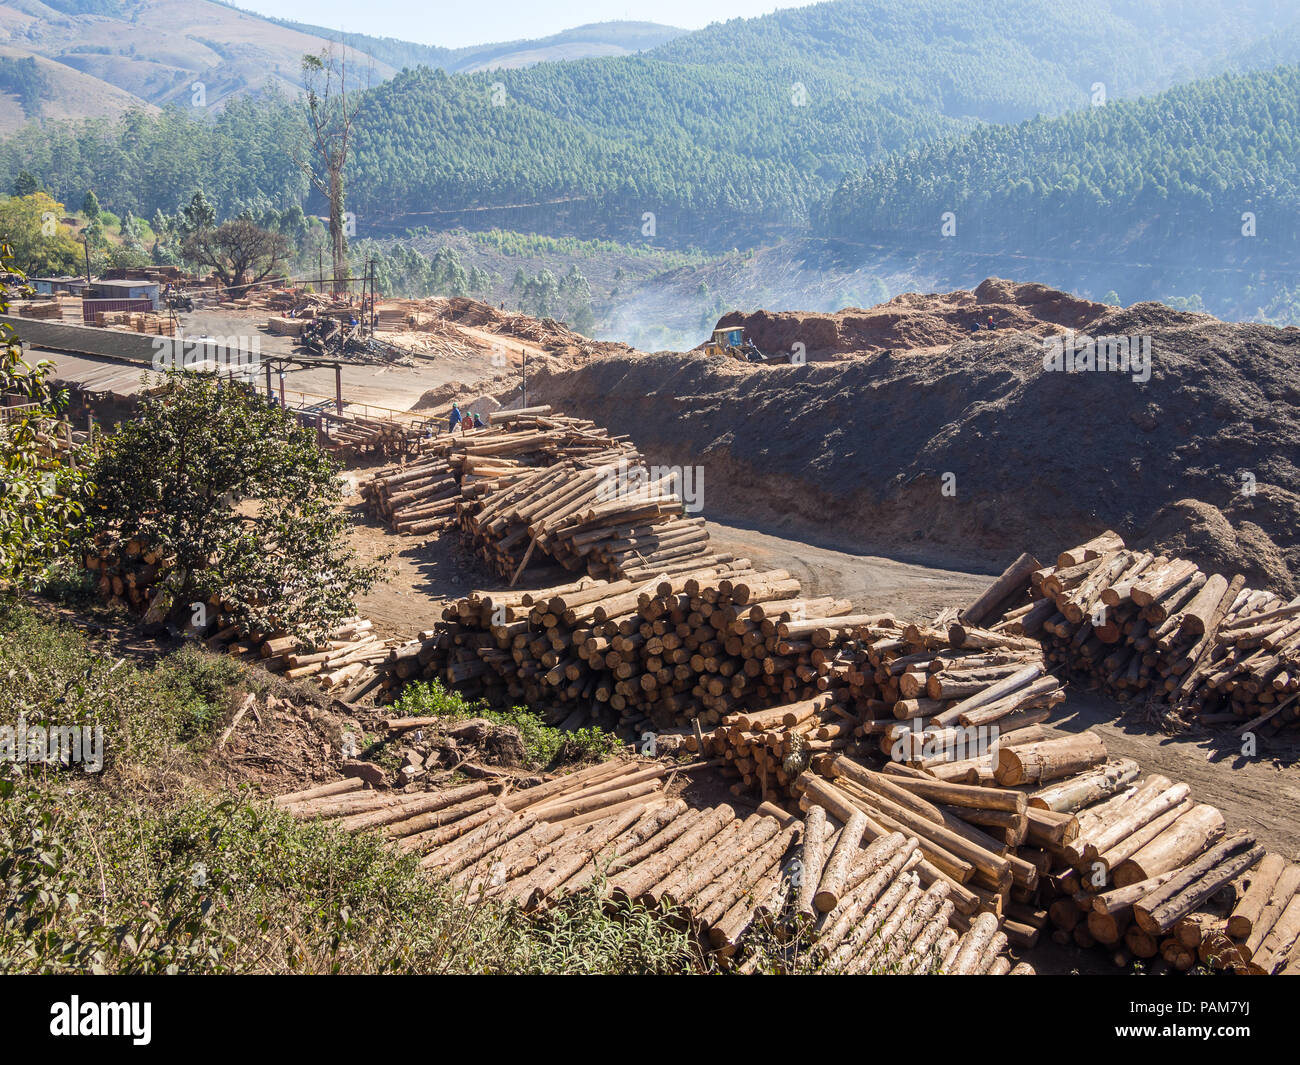 Tree logging in rural Swaziland with heavy machinery, stacked timber and forest in background, Africa. Stock Photo